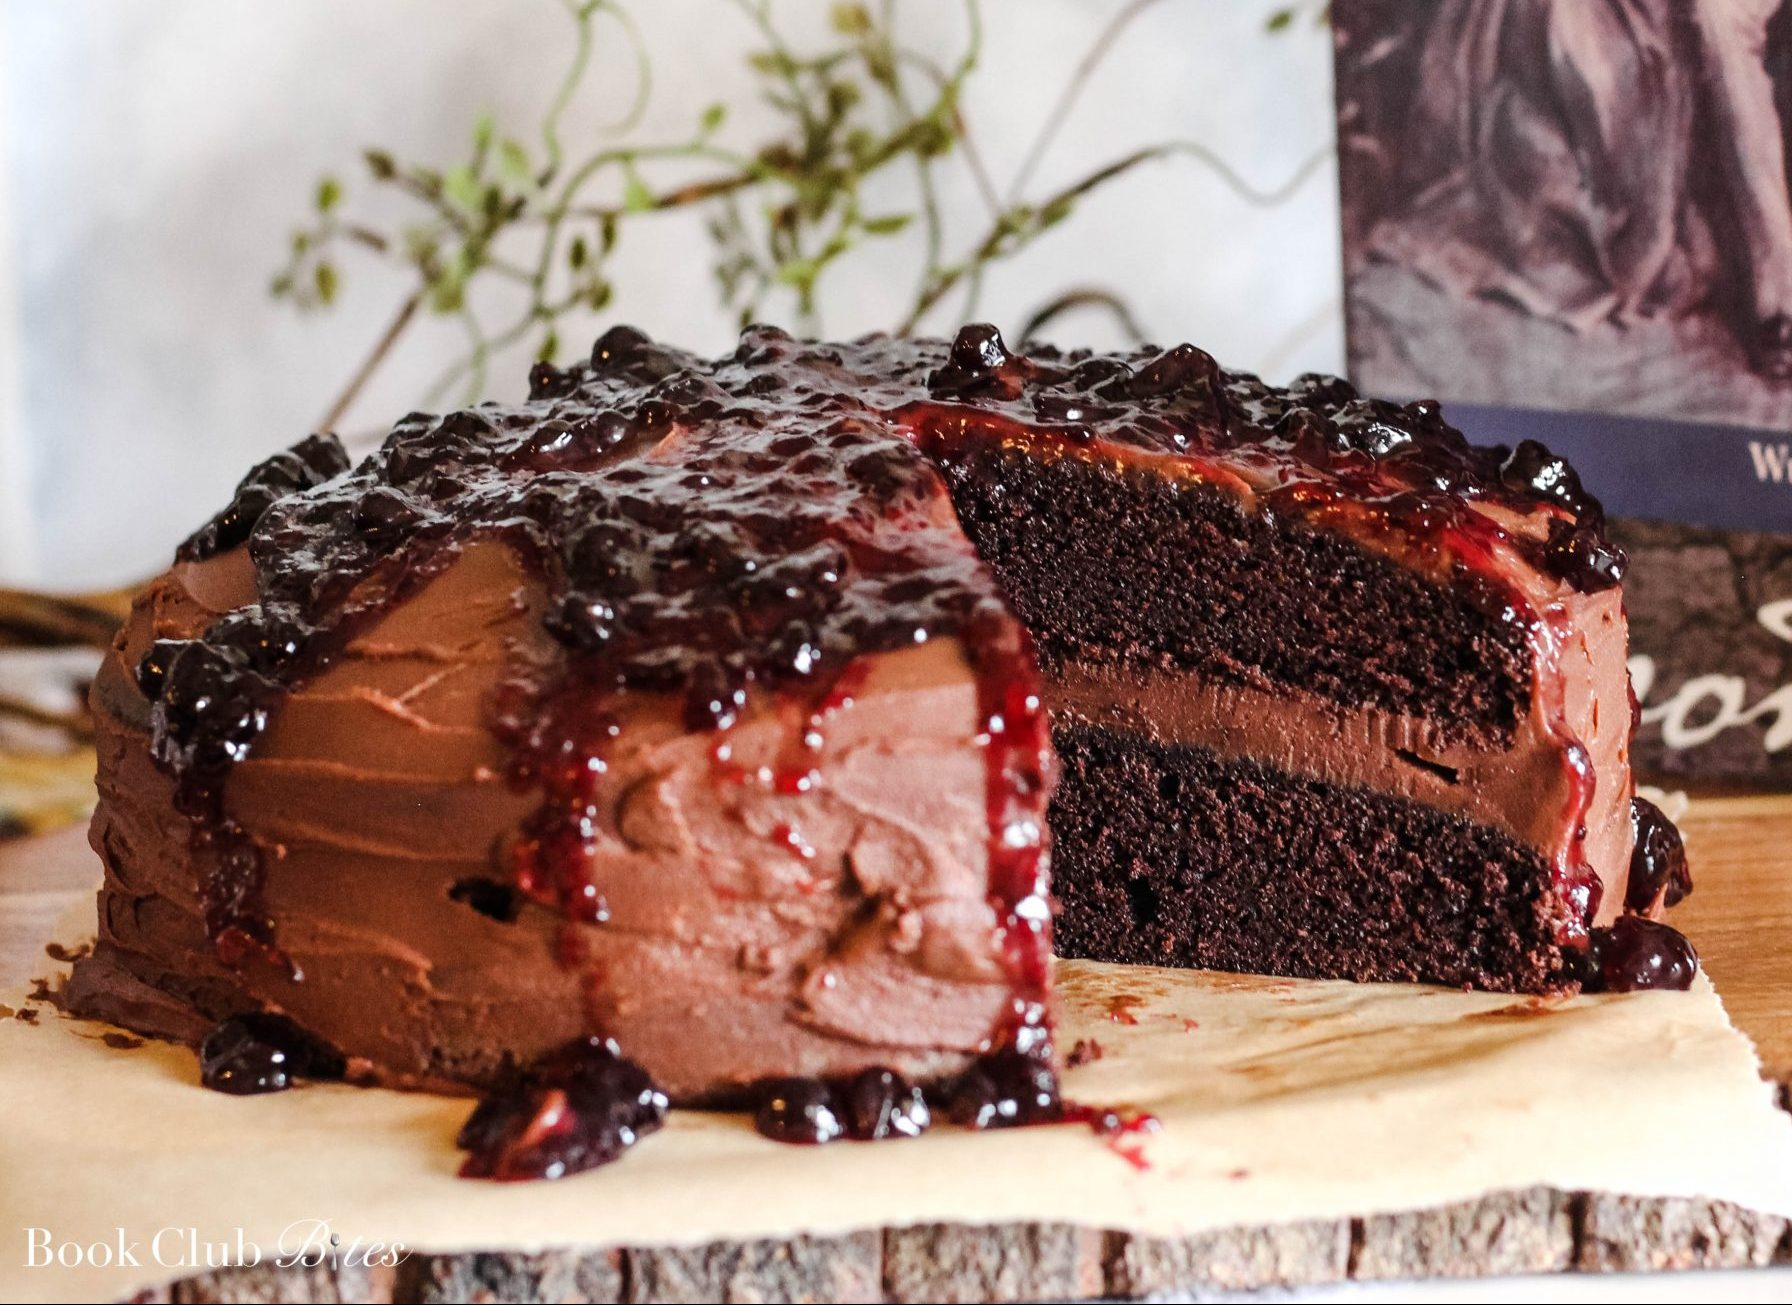 Devil's Food Cake with Blackcurrant Compote Recipe